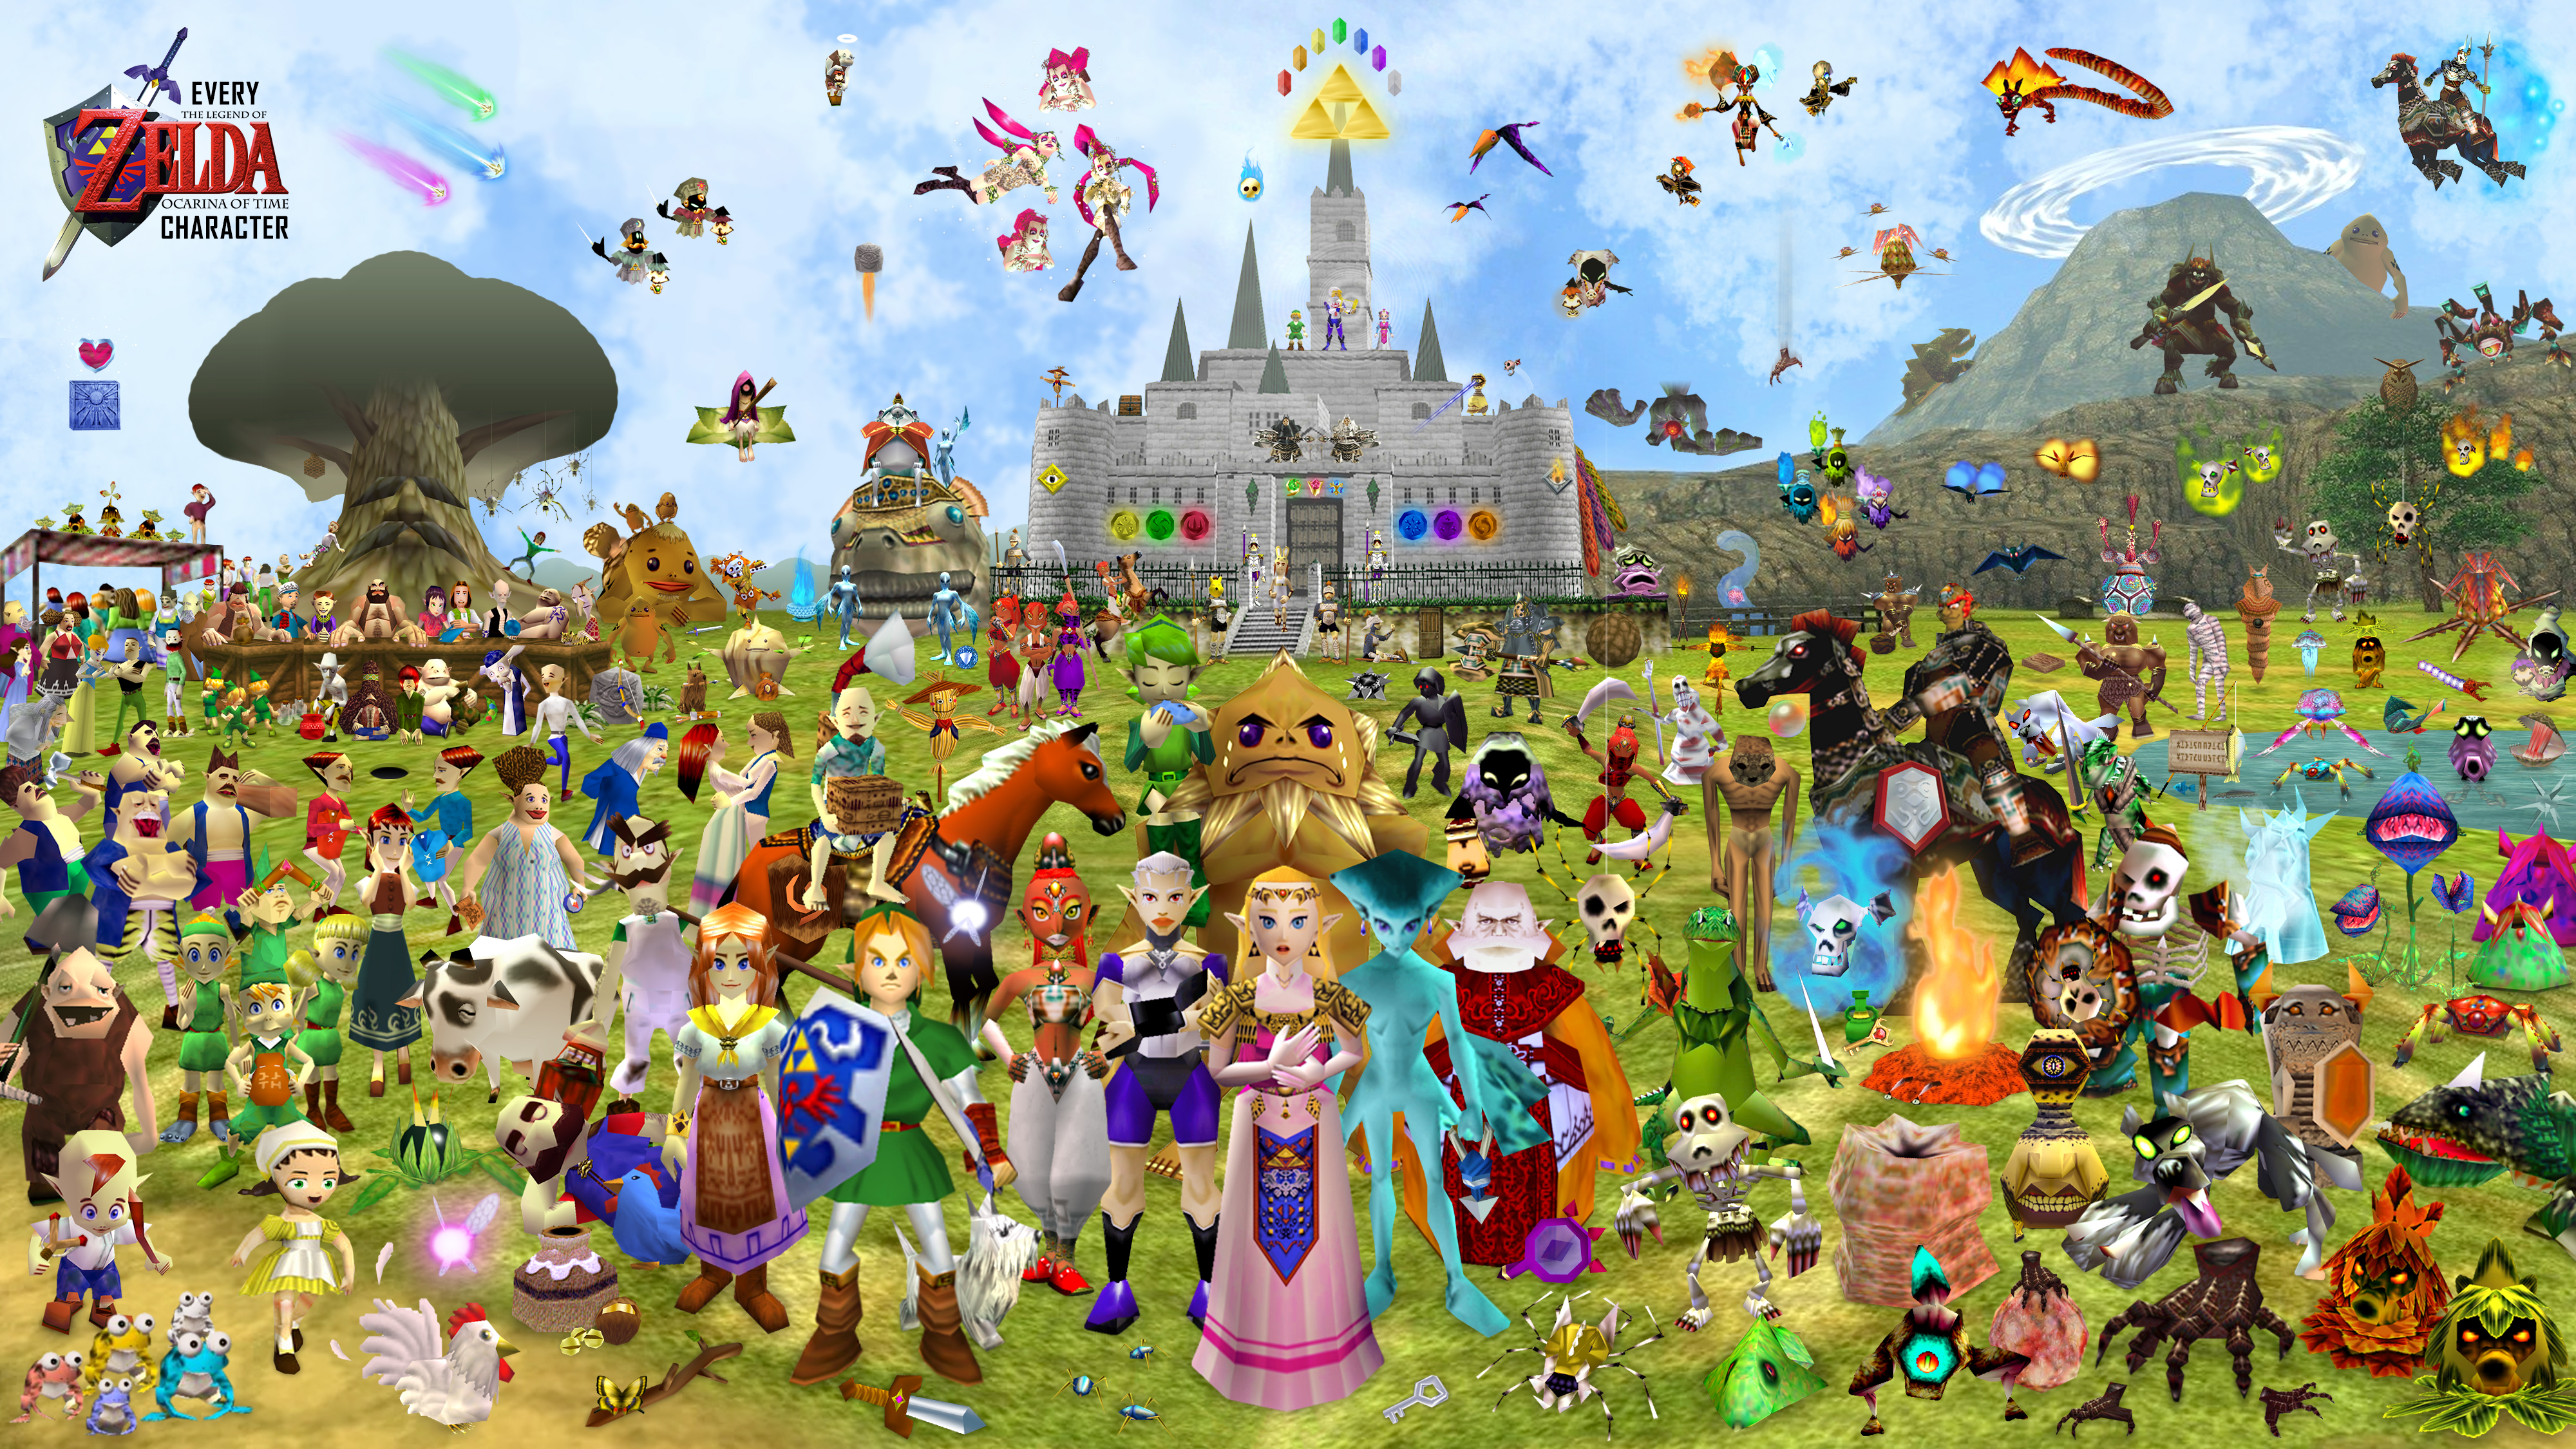 Every Character In Legend of Zelda Ocarina of Time